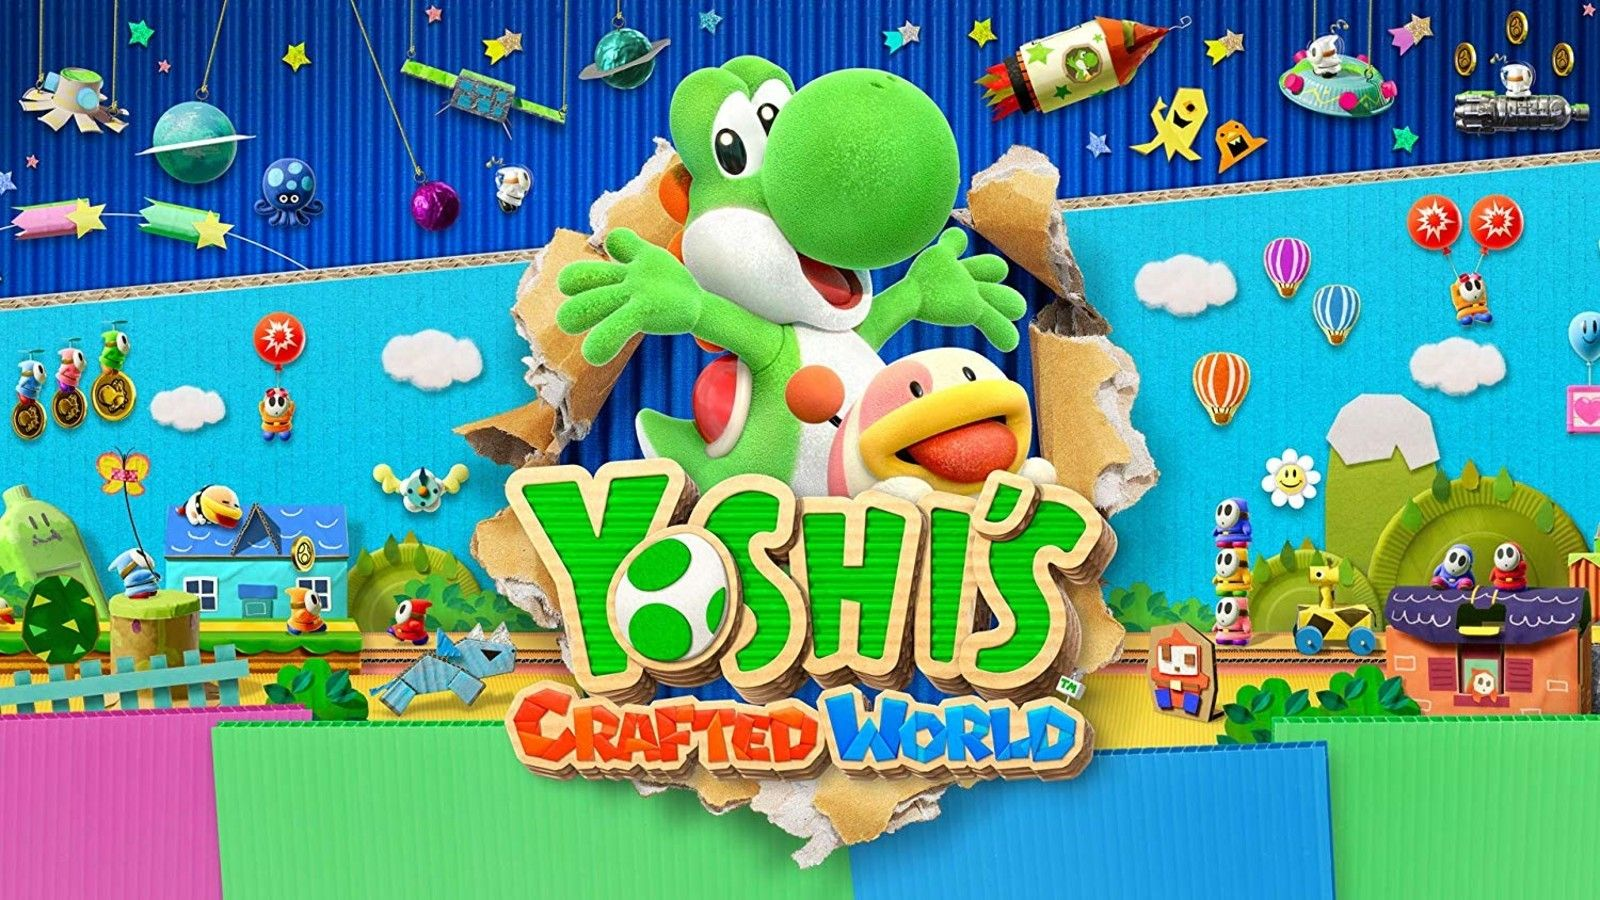 Nintendo Yoshis Crafted World